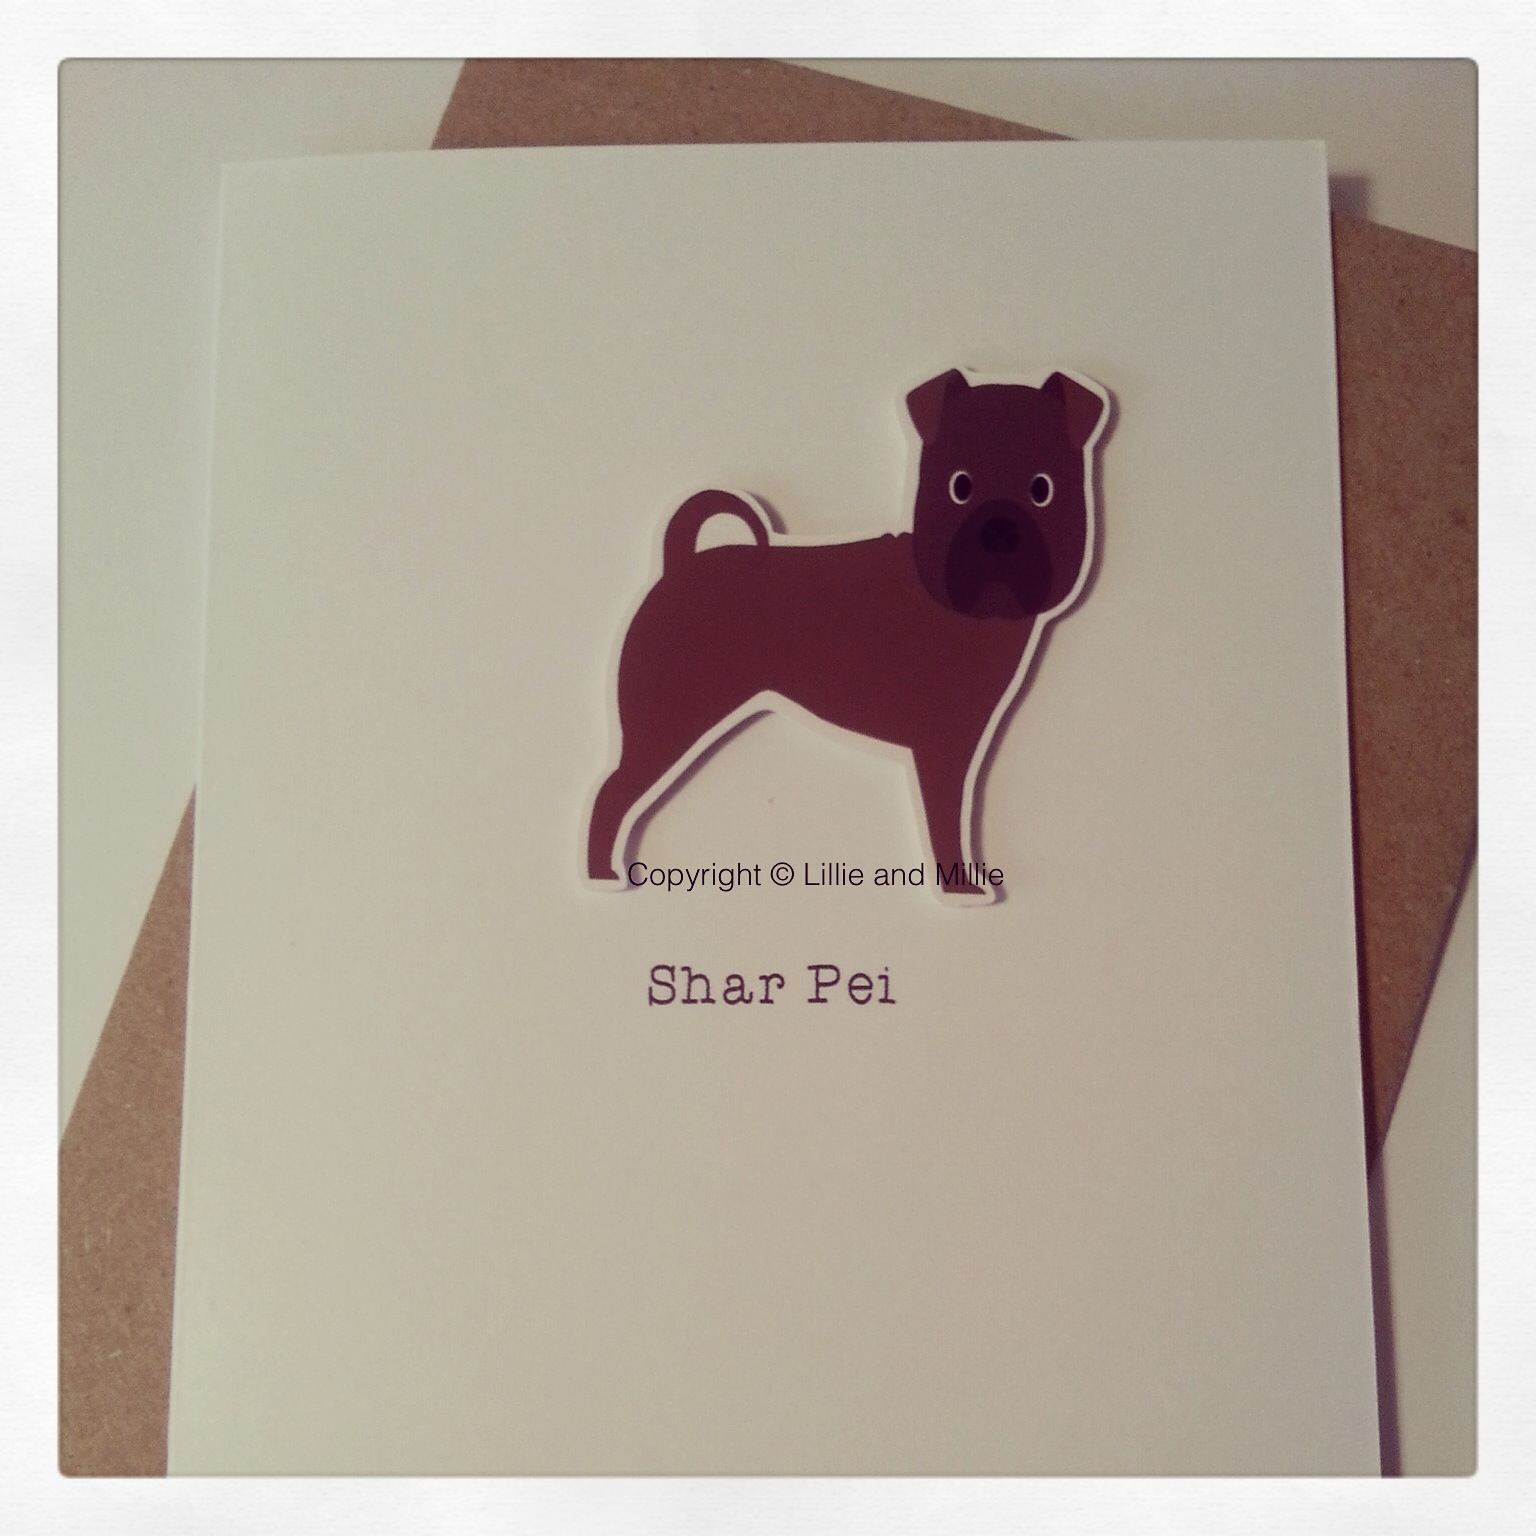 Cute and Cuddly Shar Pei Dog Greetings Card